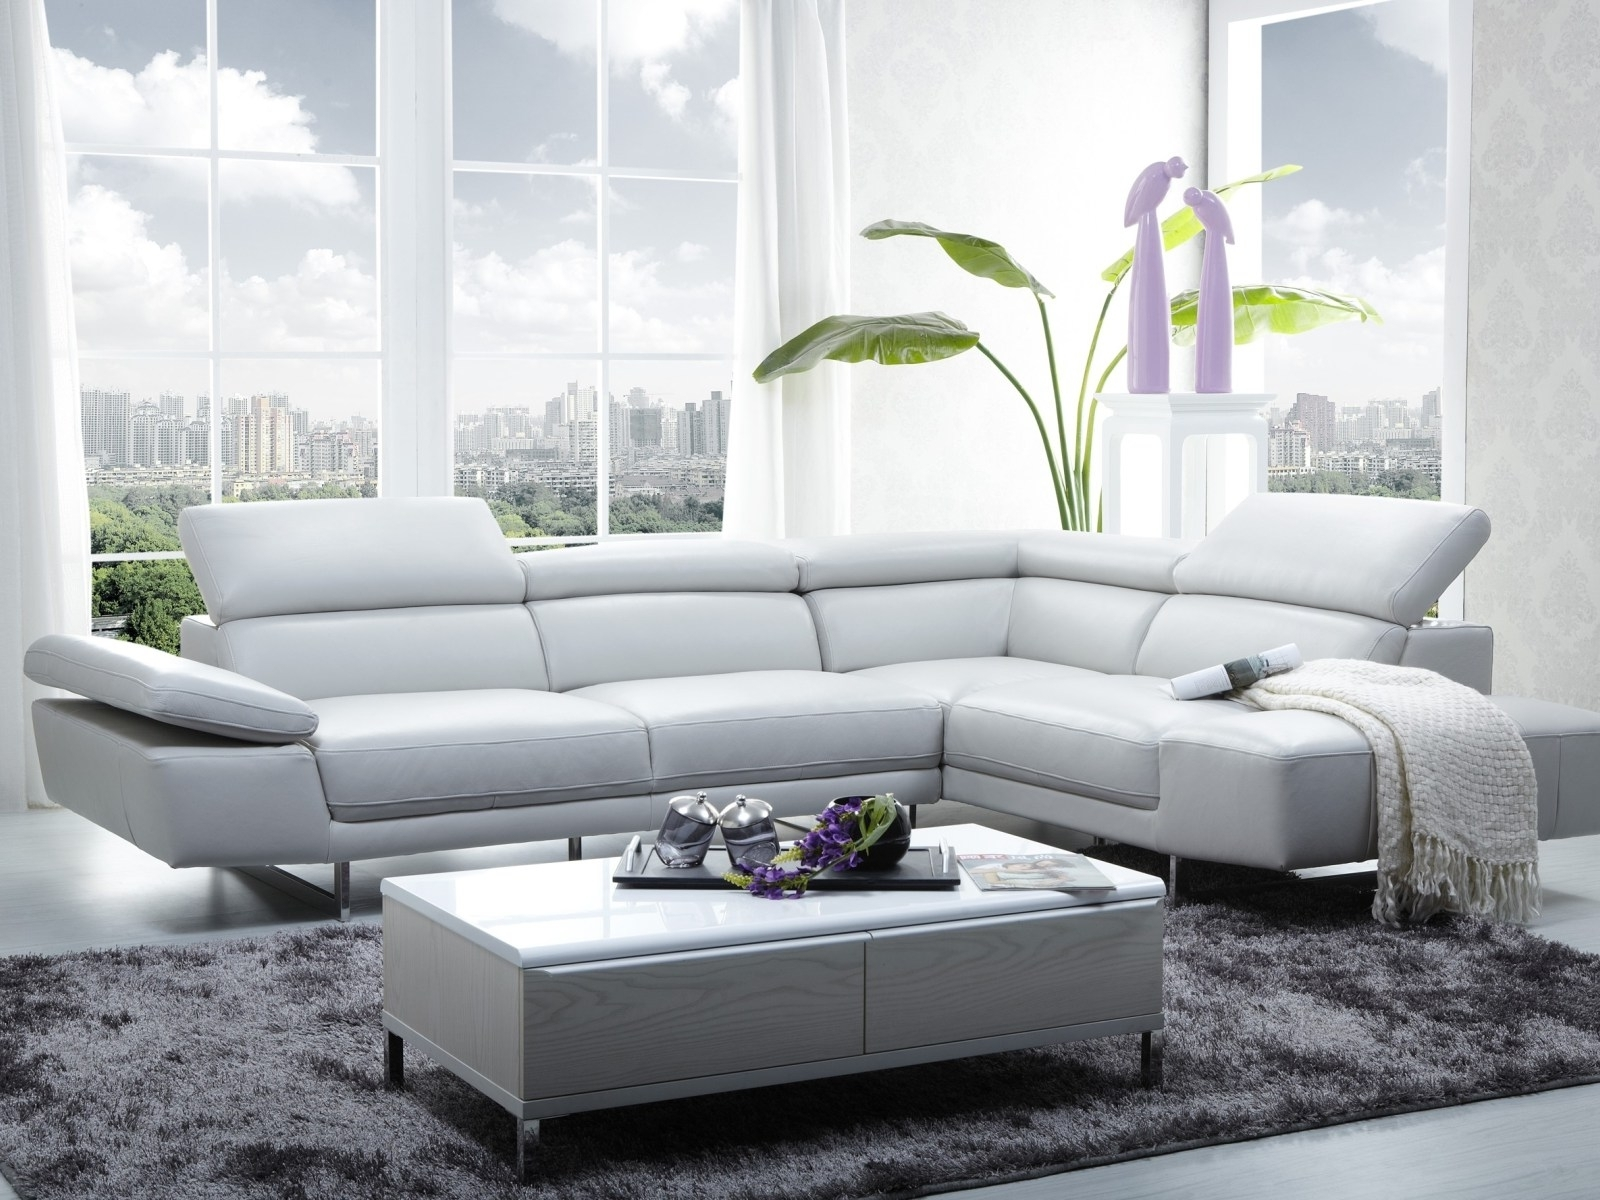 ▻ Sofa : 15 3058702 Poster P 1 A Modular Sofa That Can Rearrange Pertaining To Most Recently Released Sectional Sofas That Can Be Rearranged (View 1 of 15)